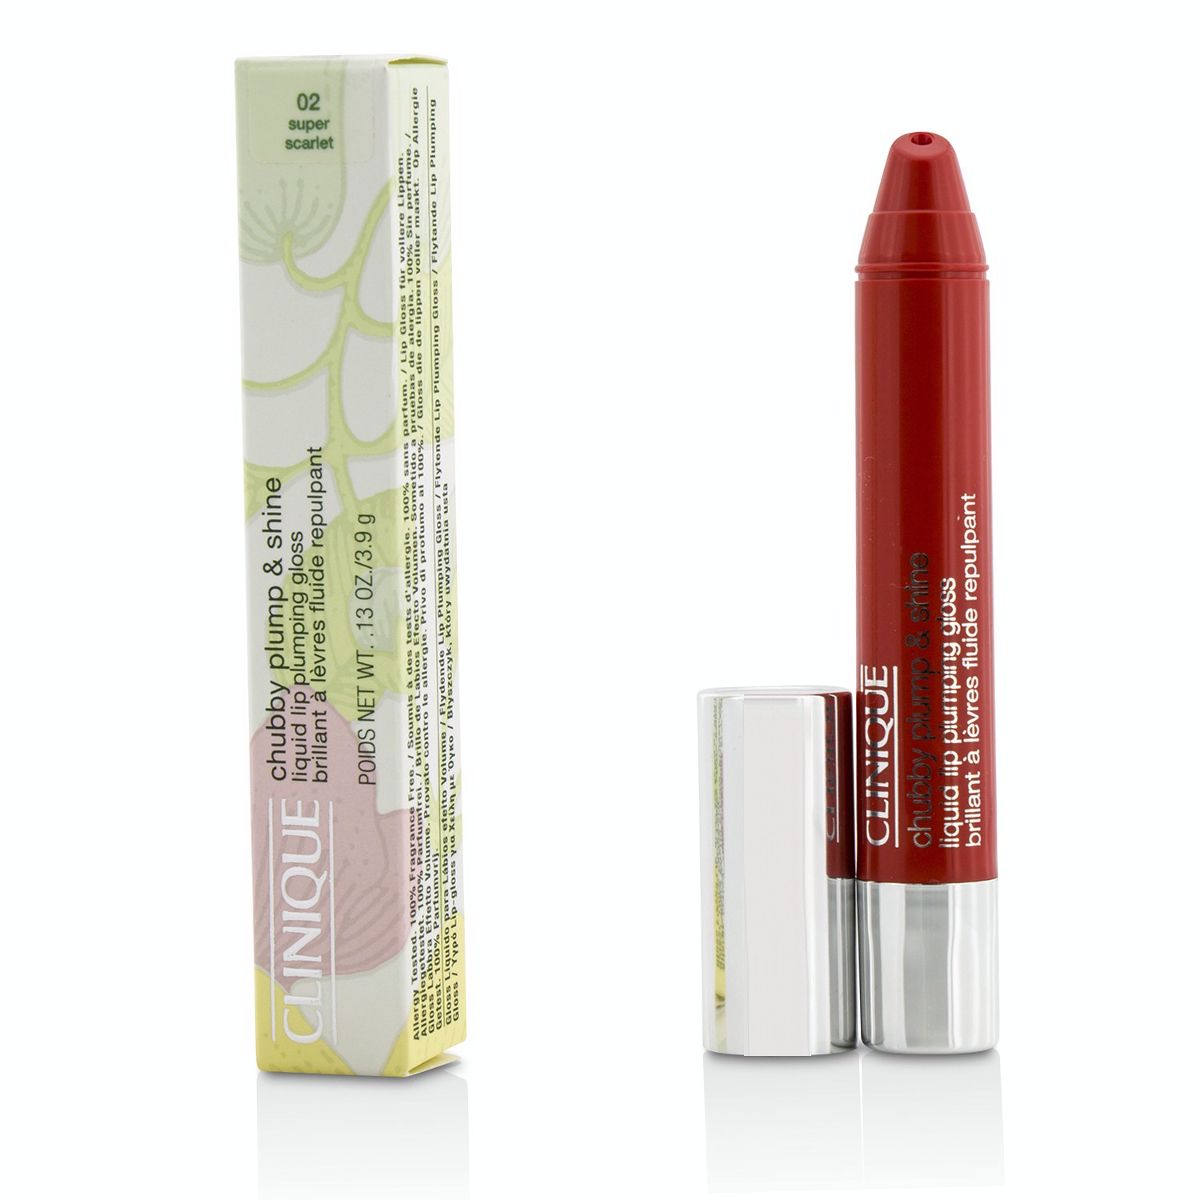 Chubby Plump  Shine Liquid Lip Plumping Gloss - #02 Super Scarlet Clinique Image